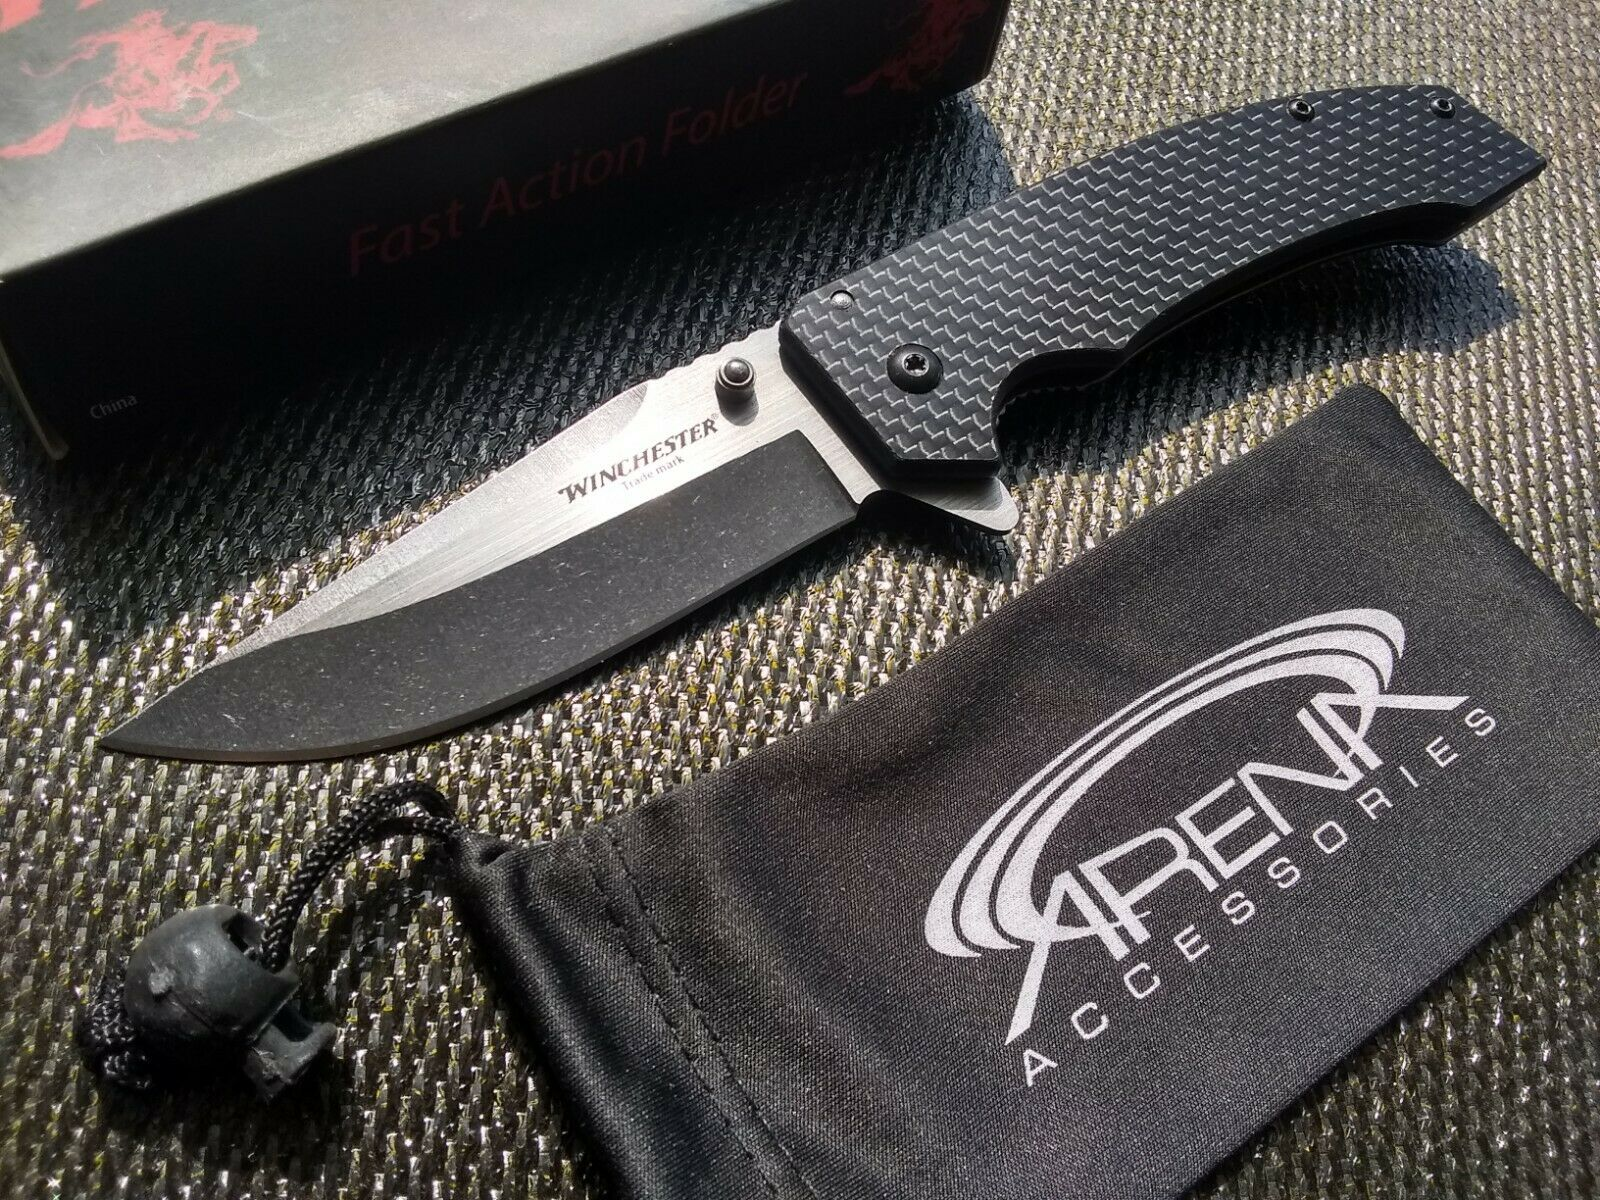 Winchester Real Carbon Fiber Frame LockPocket Knife EDC Flipper Blade Blue Liner